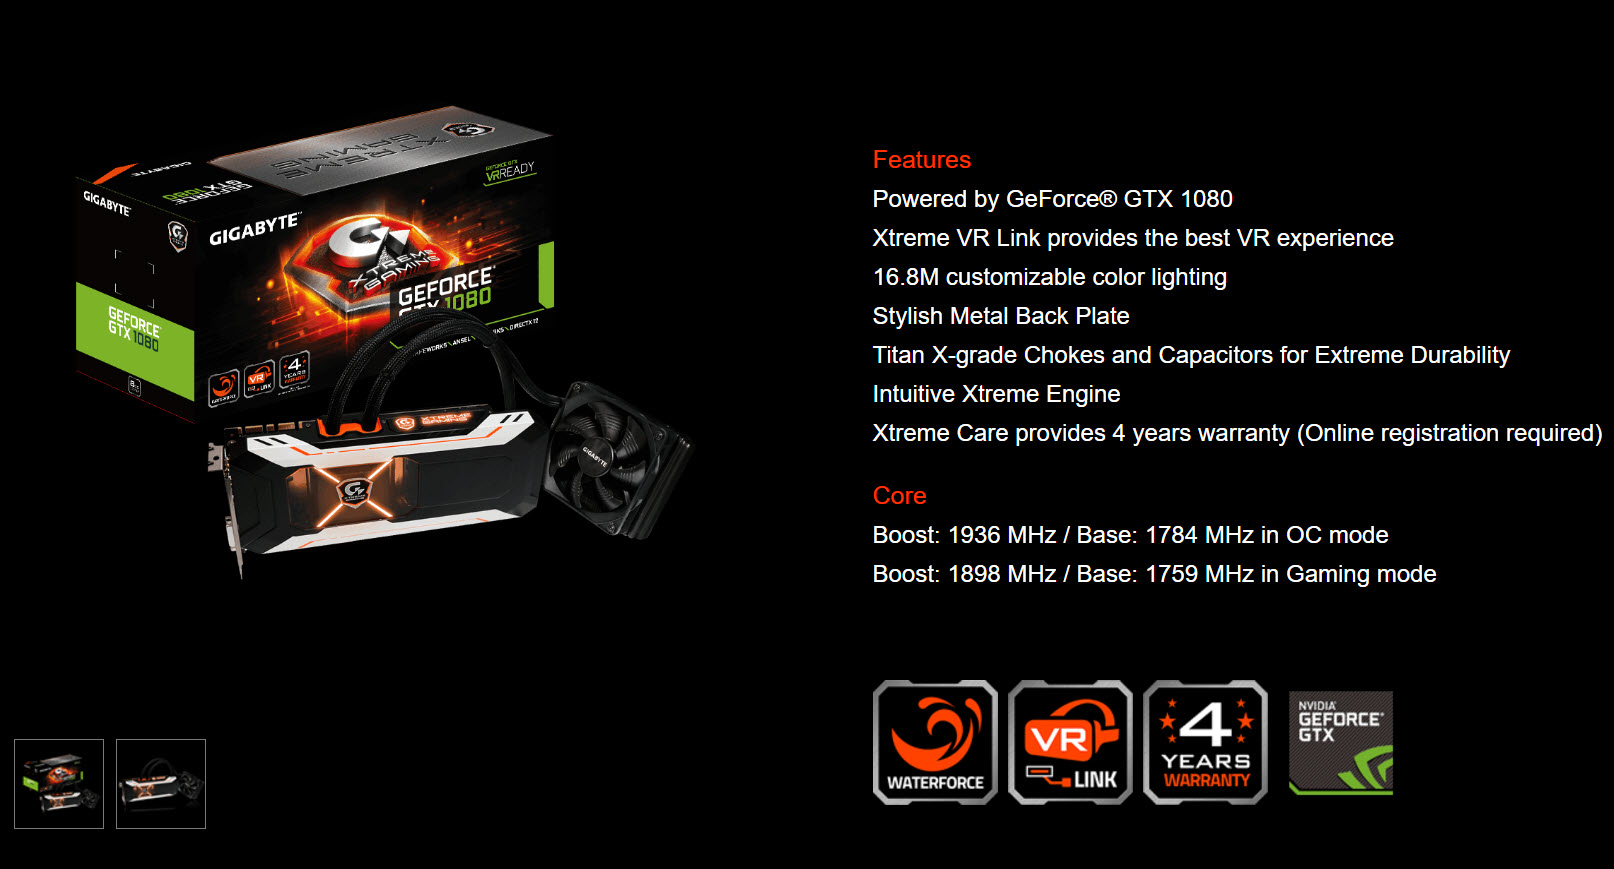 gigabyte geforce gtx 1080 xtreme gaming water cooling 8gb review